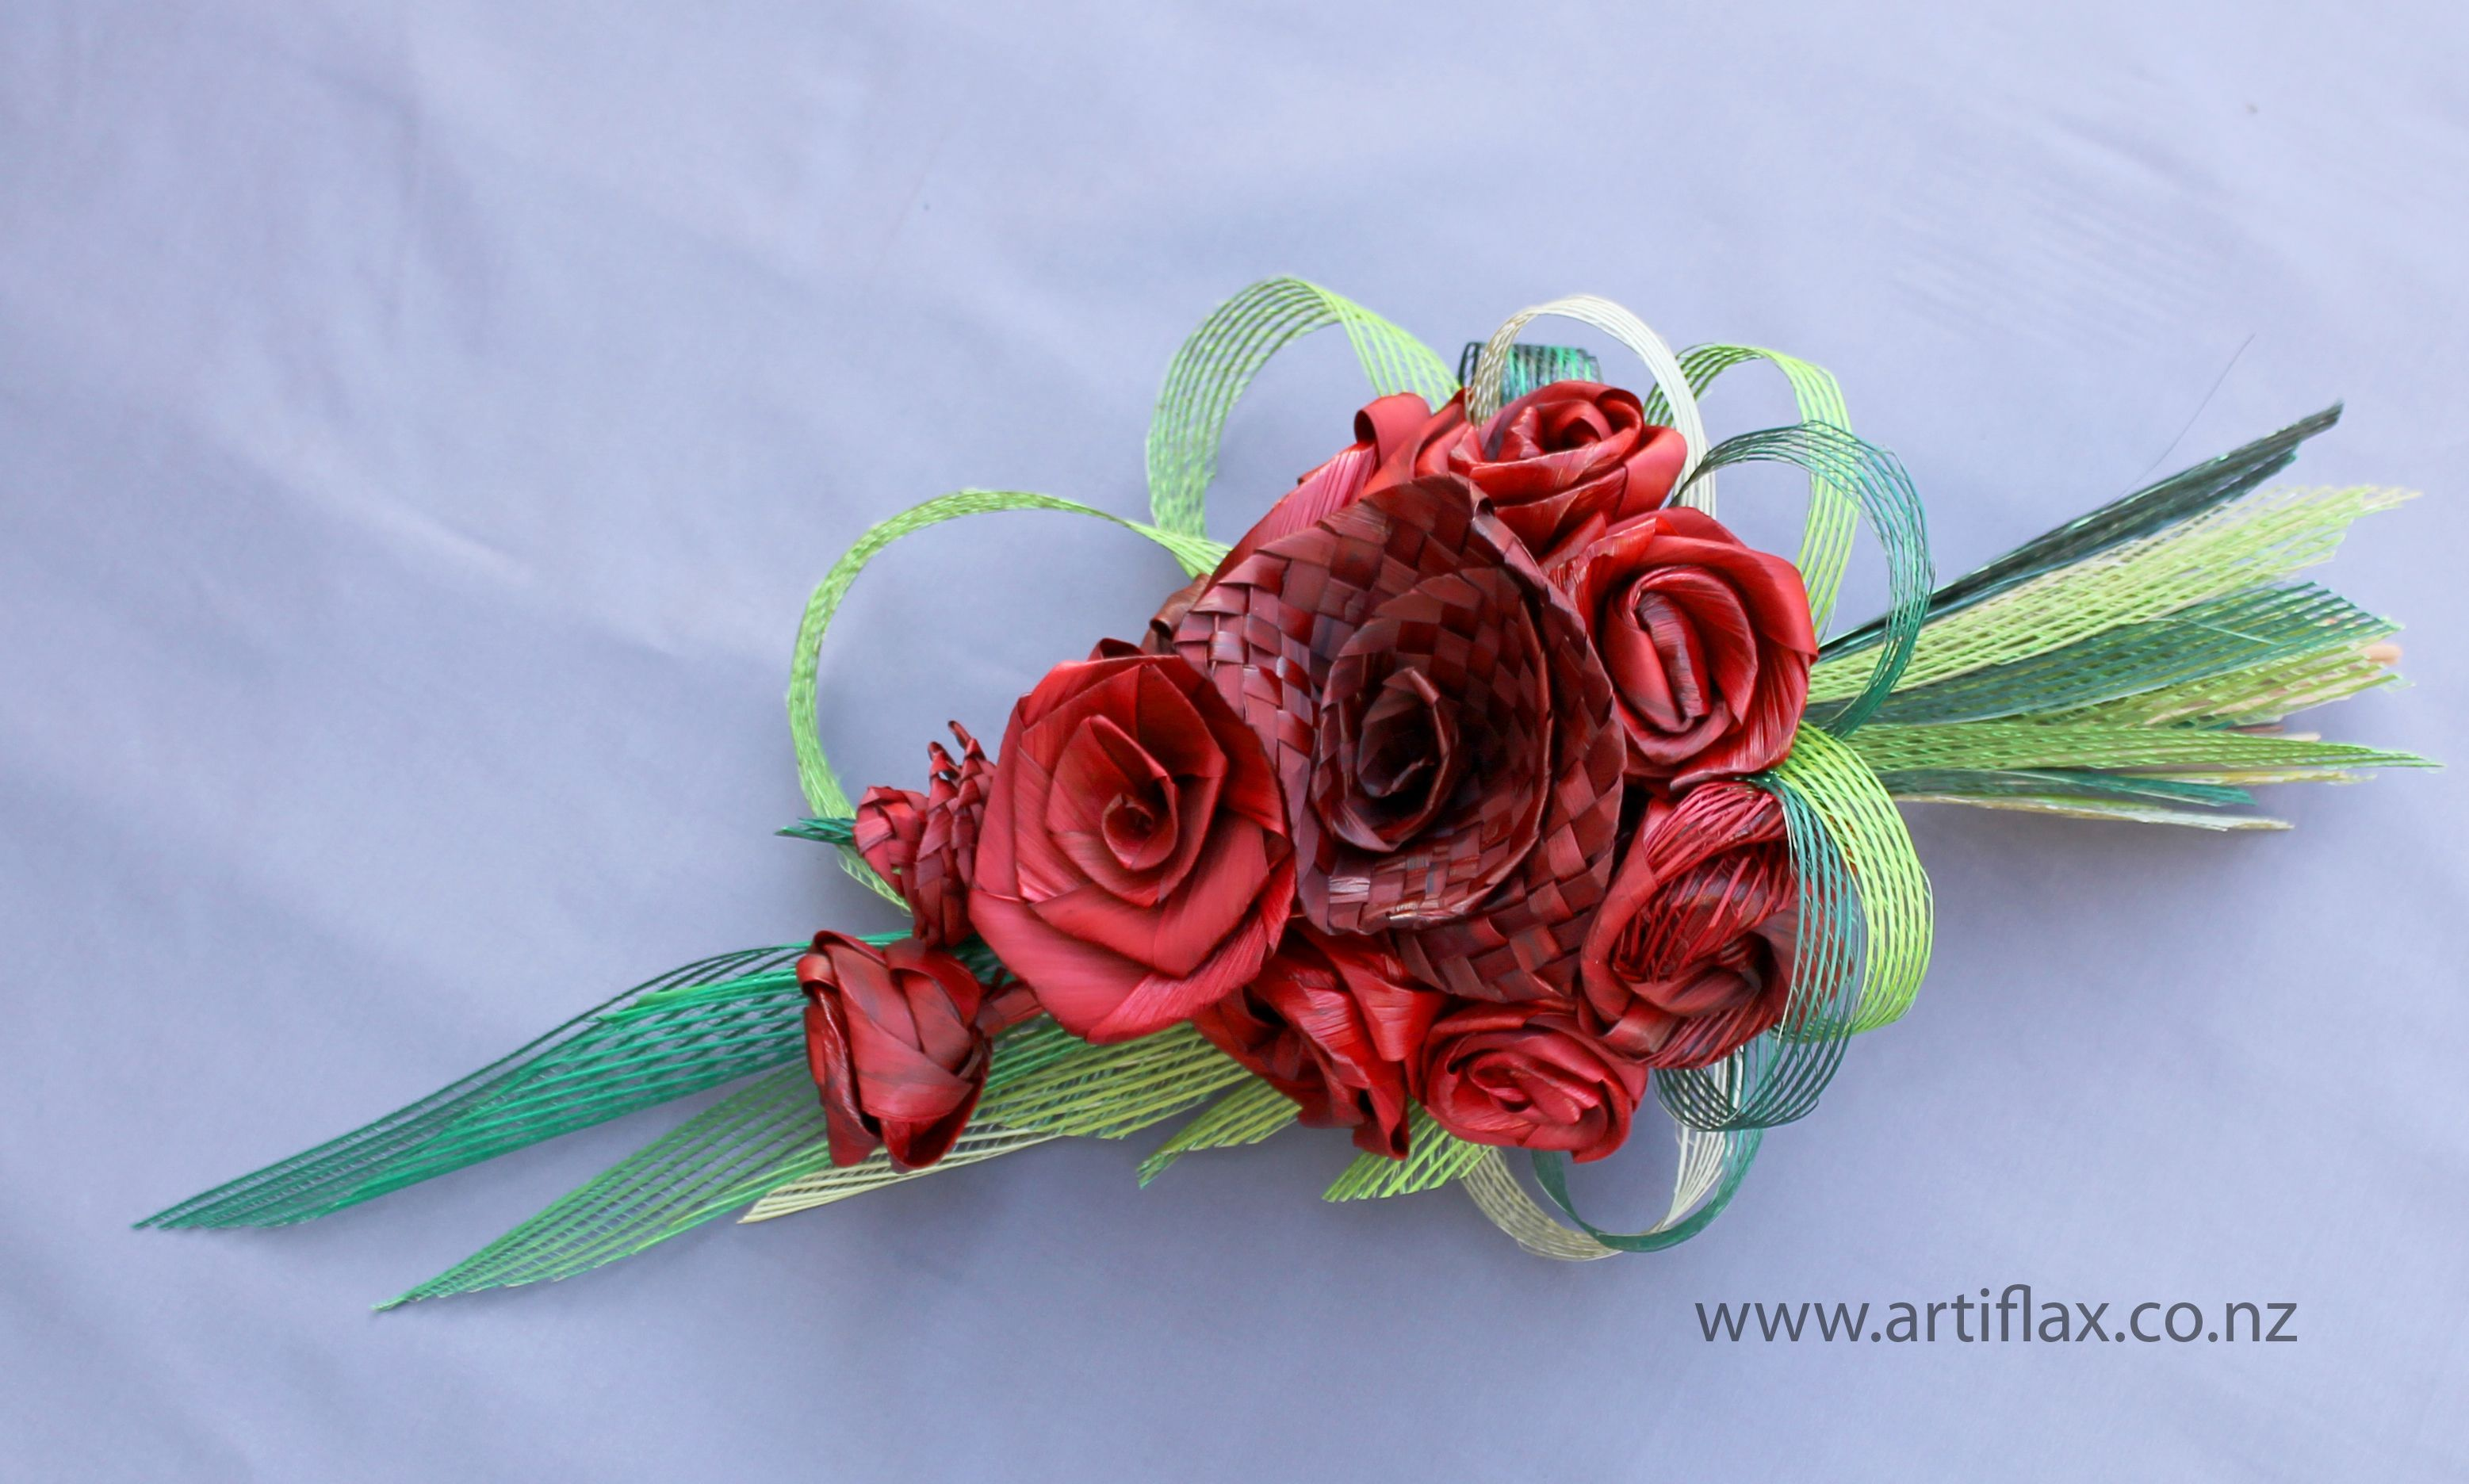 Stunning Flax Flower Gift Bouquet In Shades Of Red, Framed